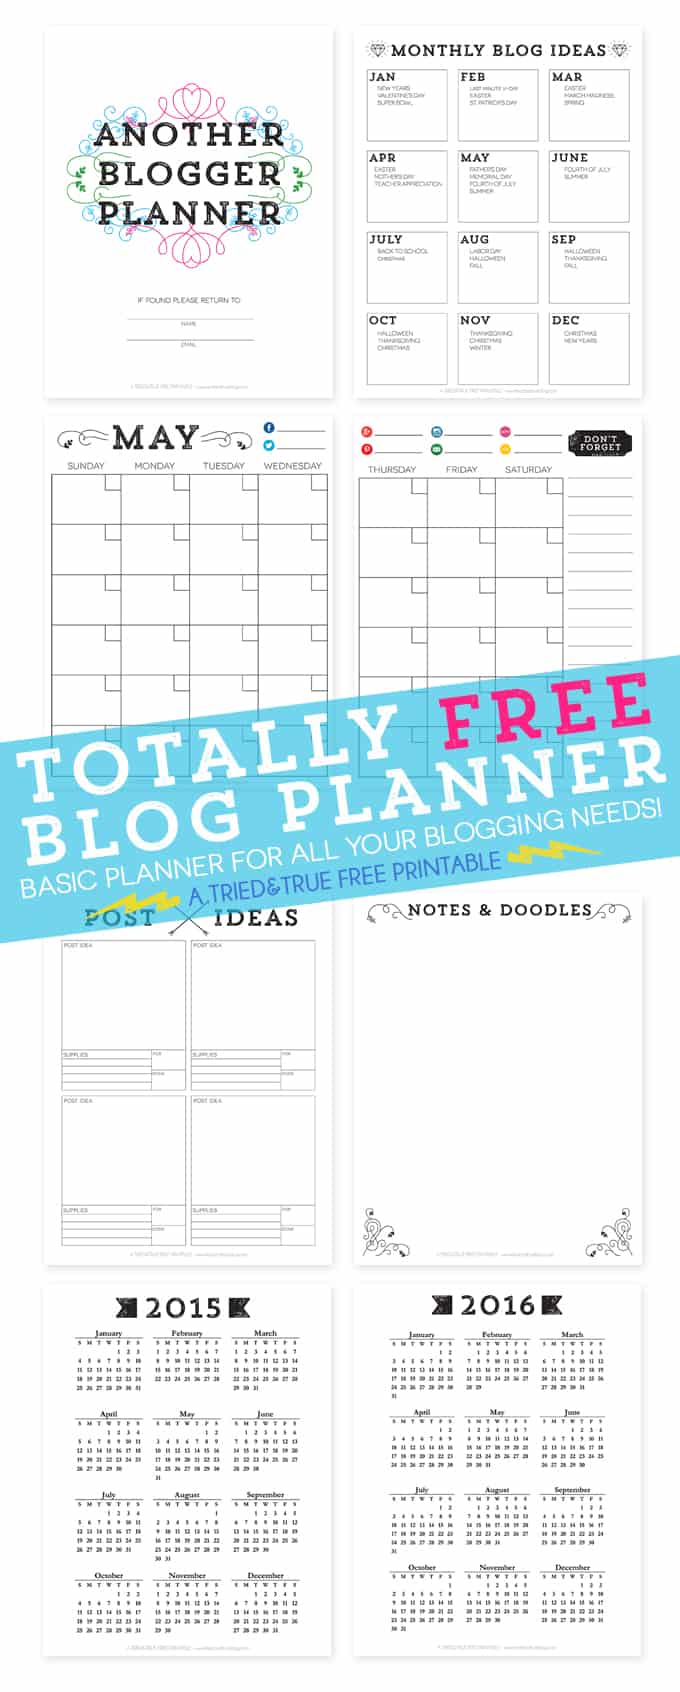 Totally Free Blog Planner - Free printable from Tried & True